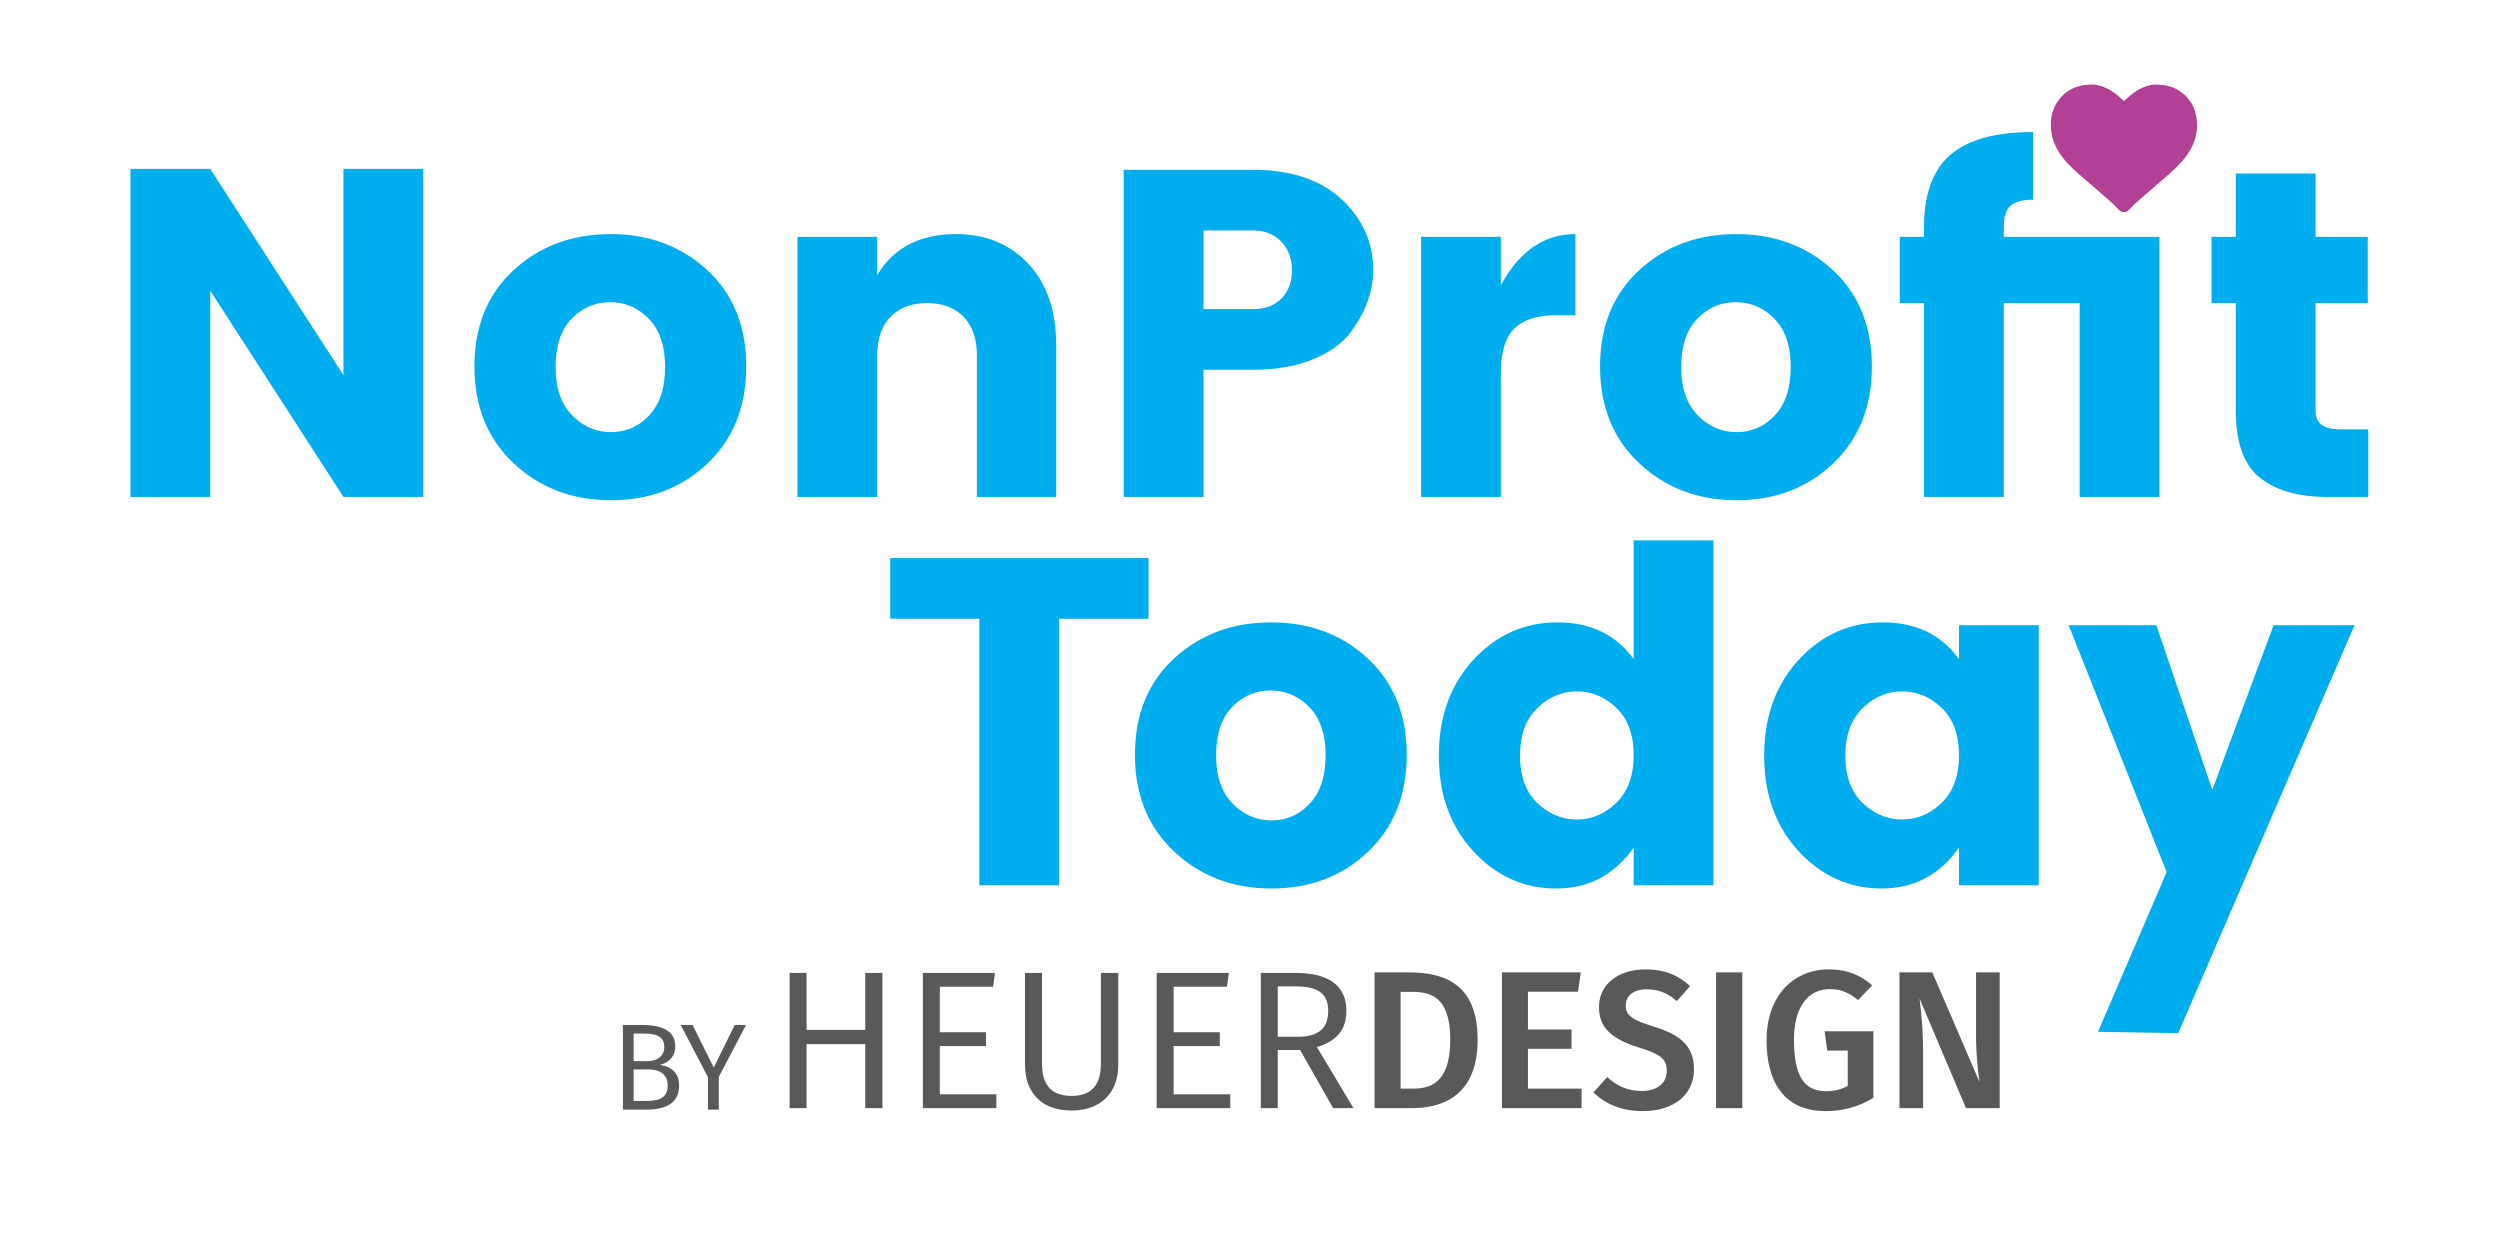 NonProfit Today logo